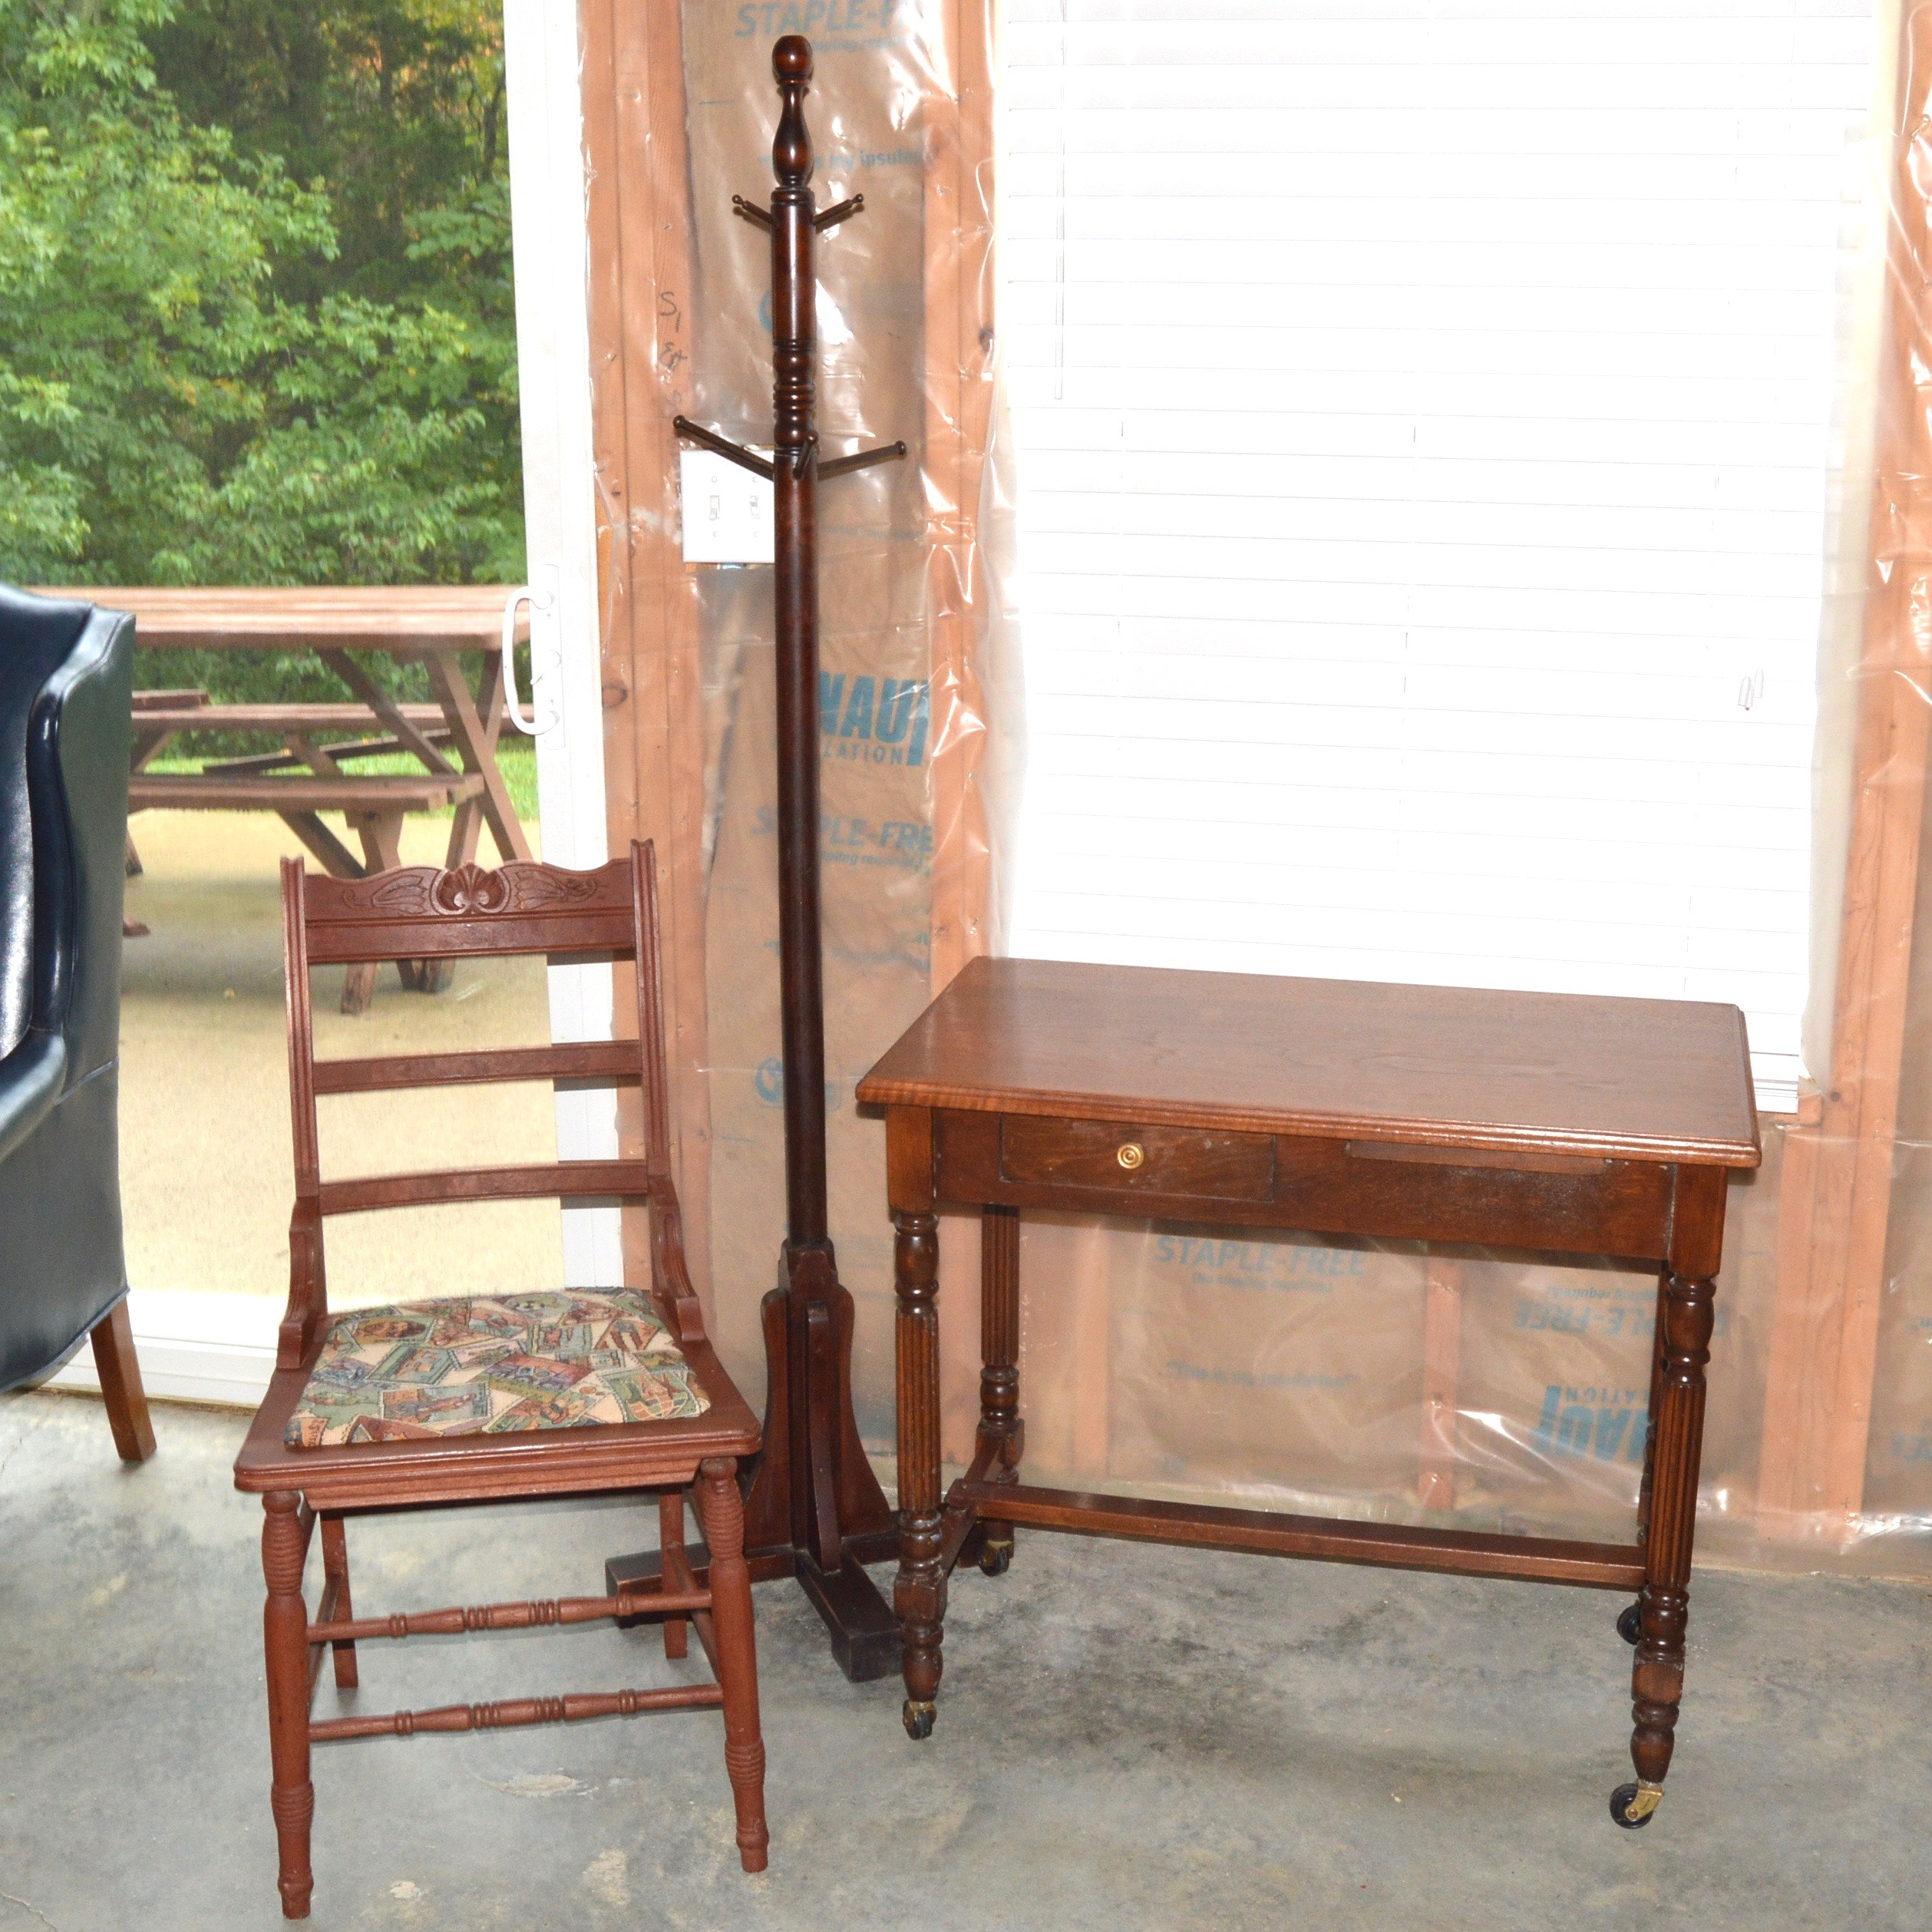 Vintage Wooden Coat Rack, Chair and Table